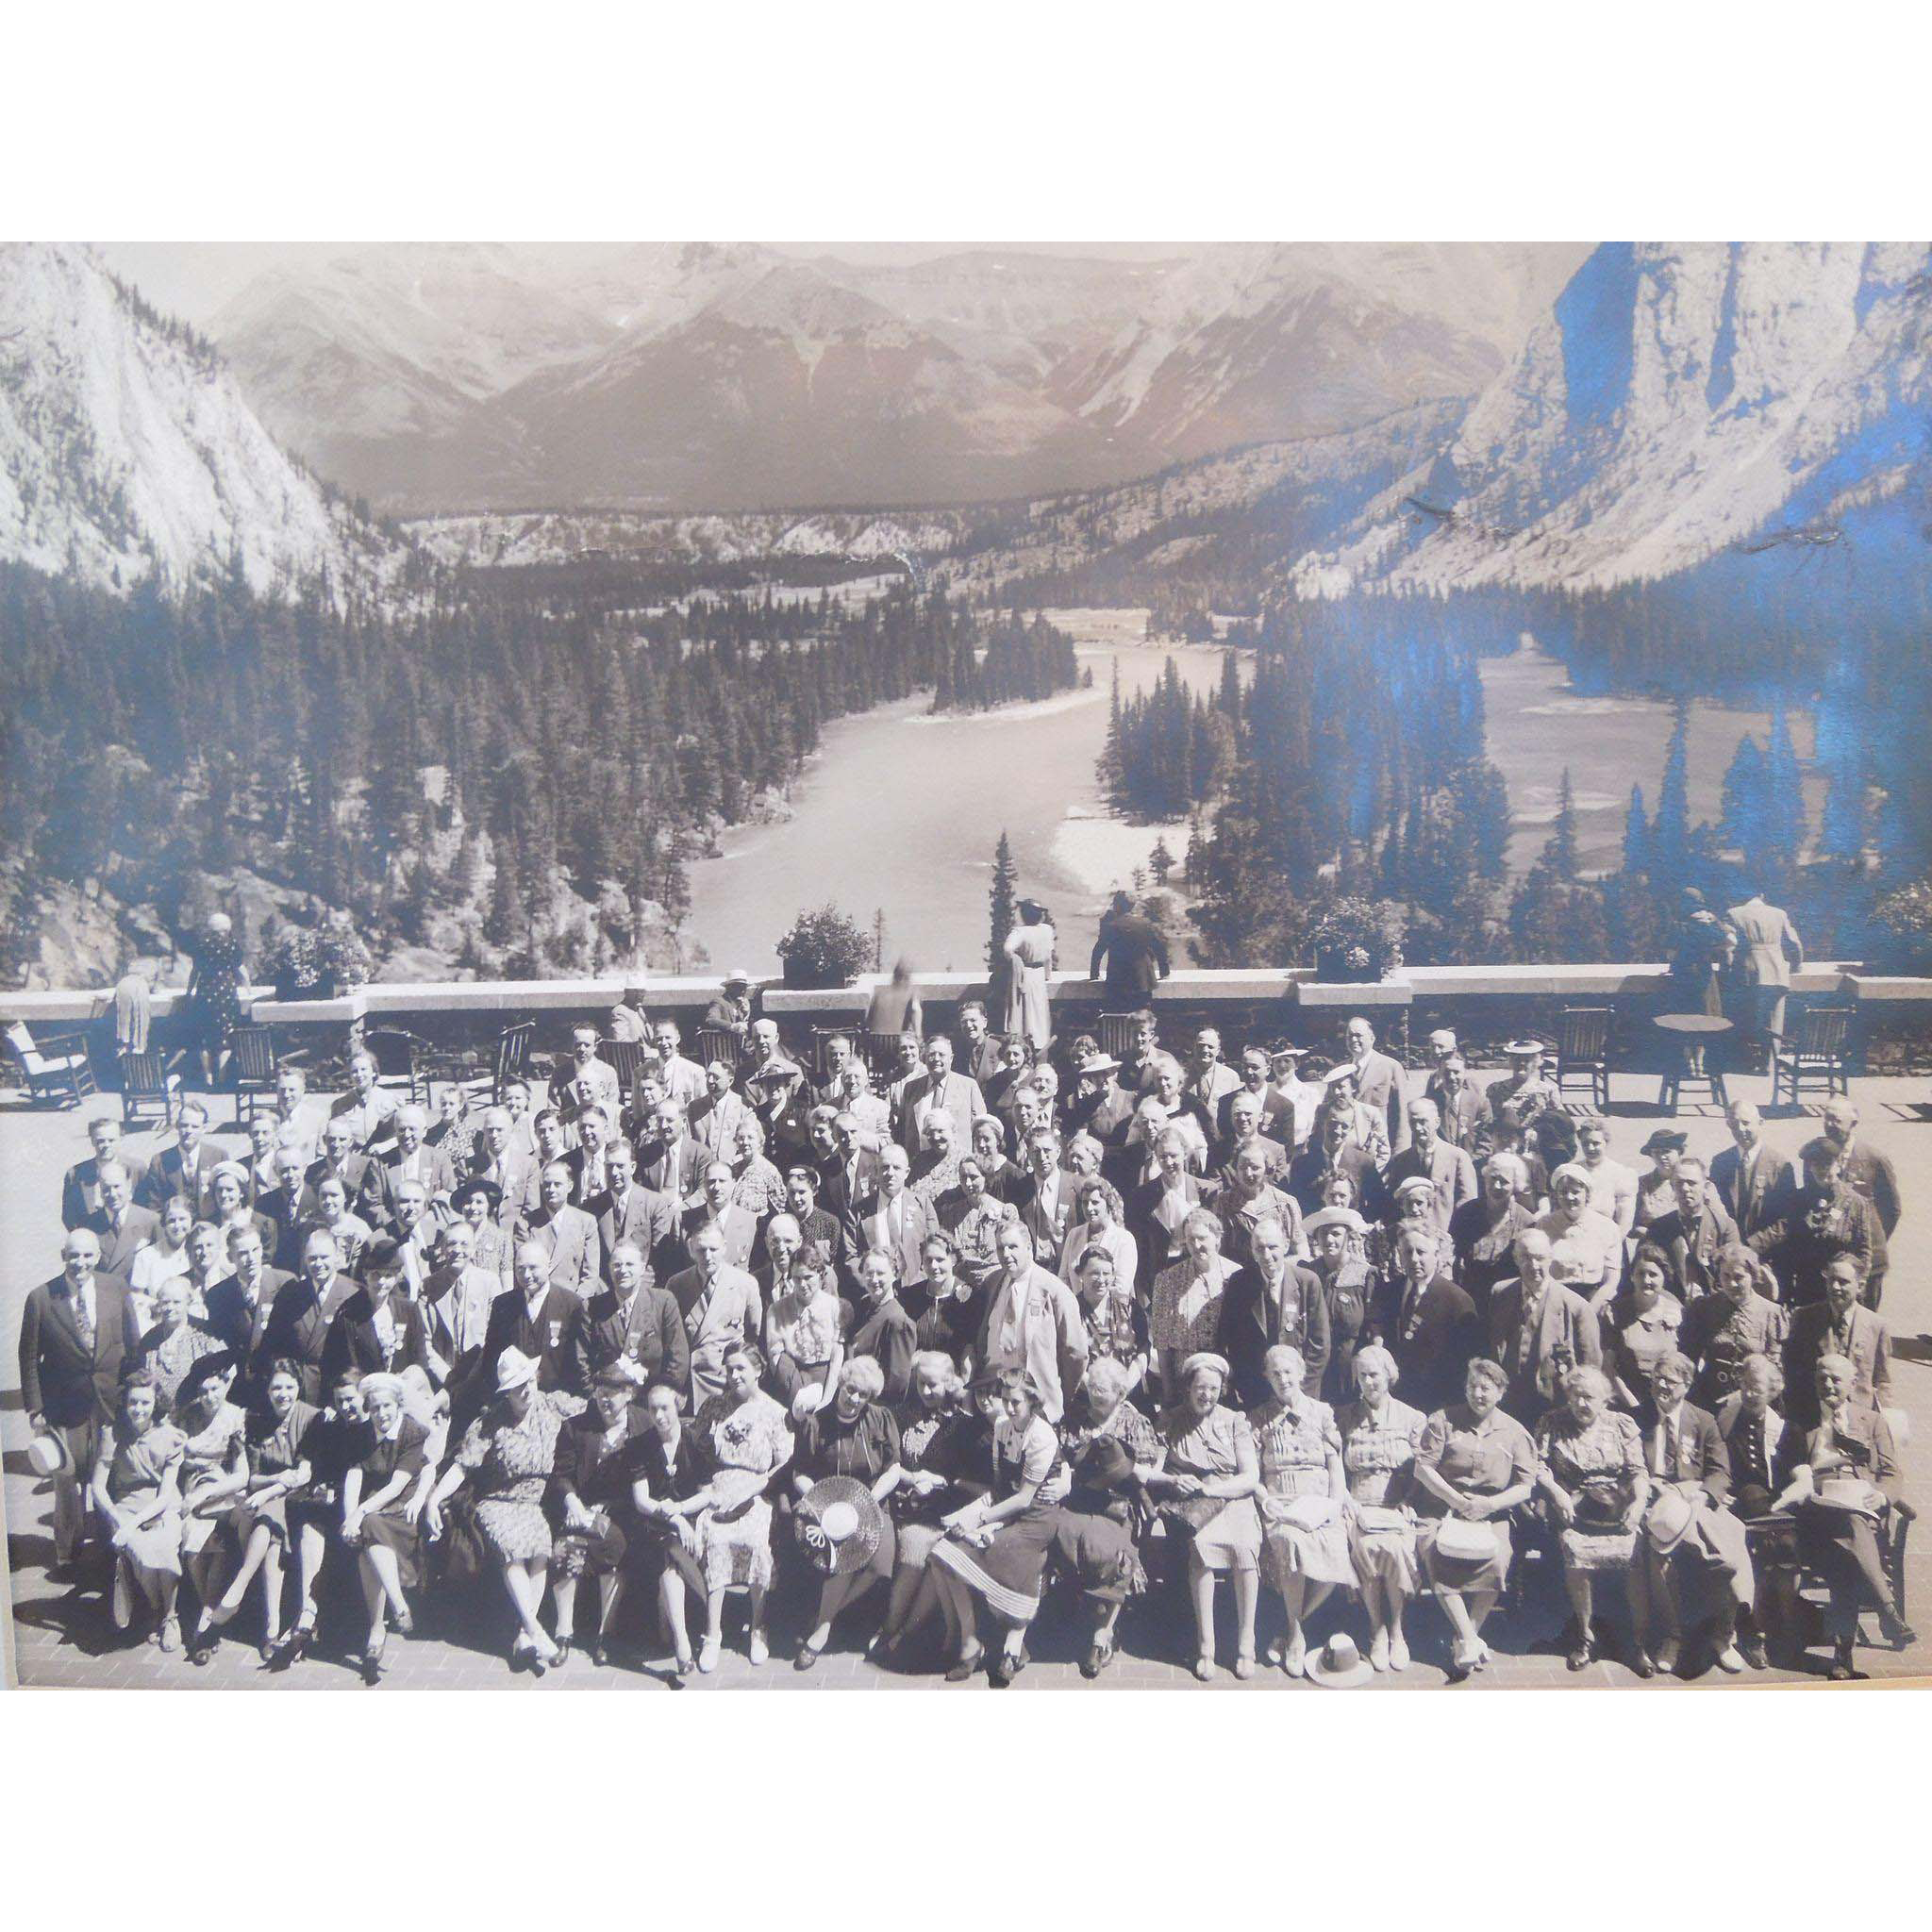 Vintage Panoramic Photograph Of Group On A Terrace At Lake Louise,Glacier, Alberta, Canada, 1930's, 1940's